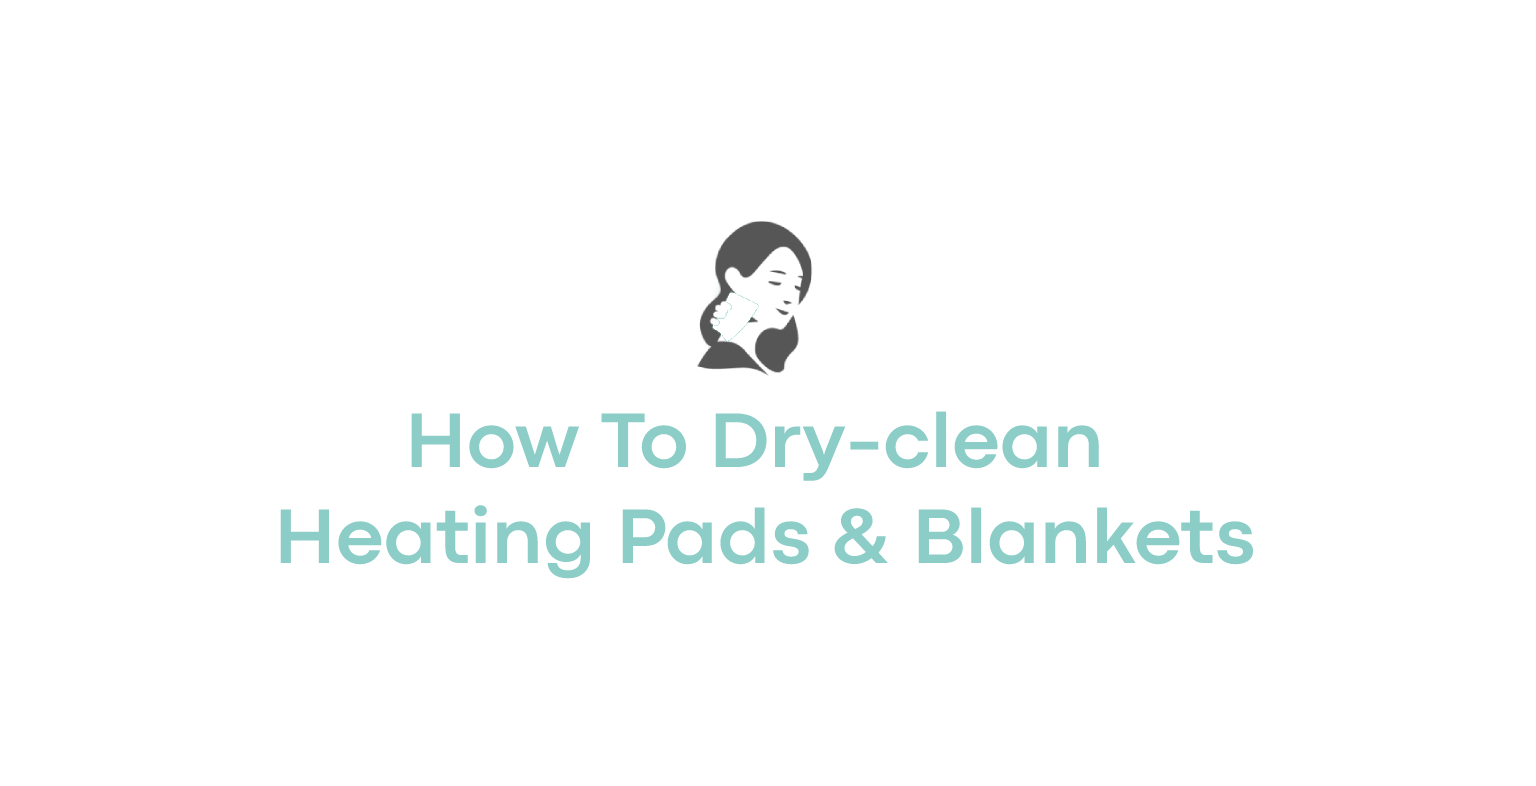 How To Dry-clean Heating Pads & Blankets